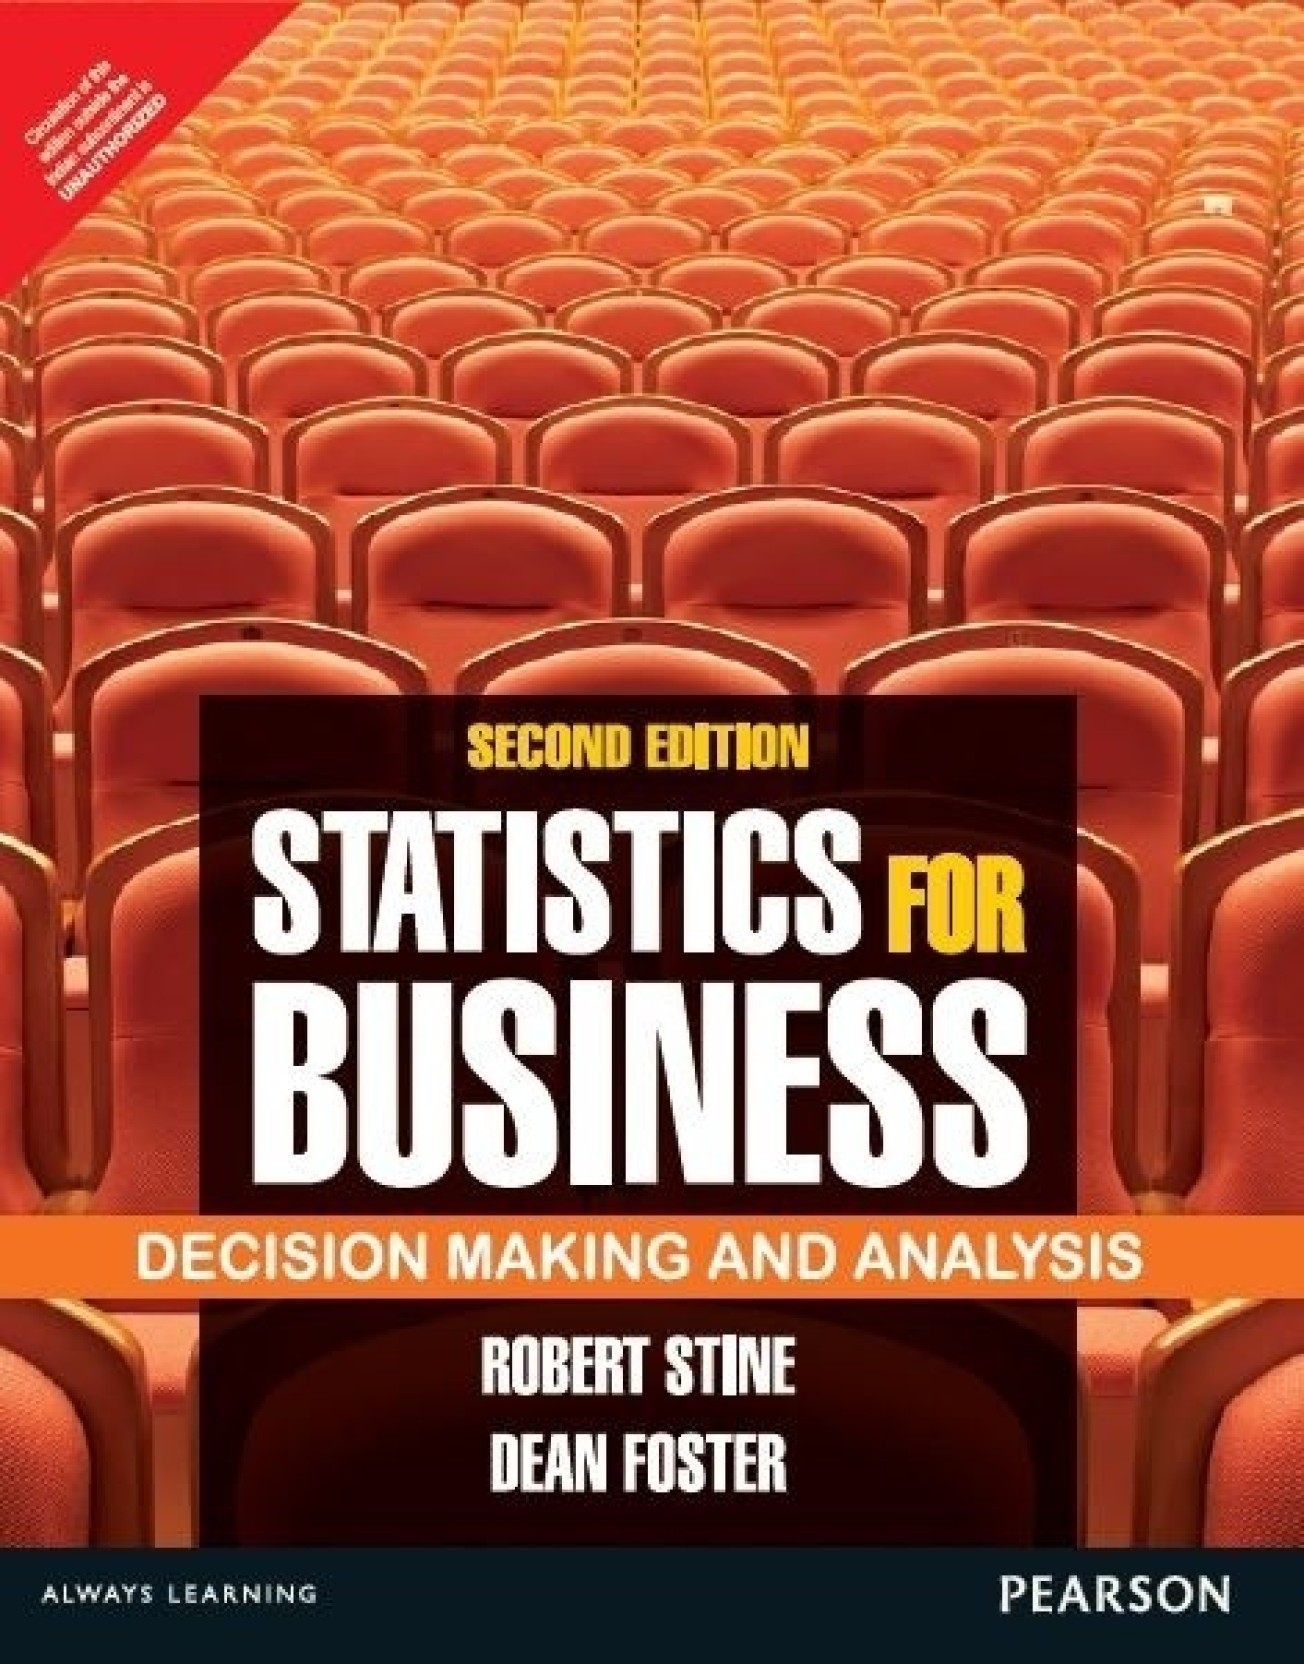 Statistics for Business: Decision Making and Analysis, 2nd Edition